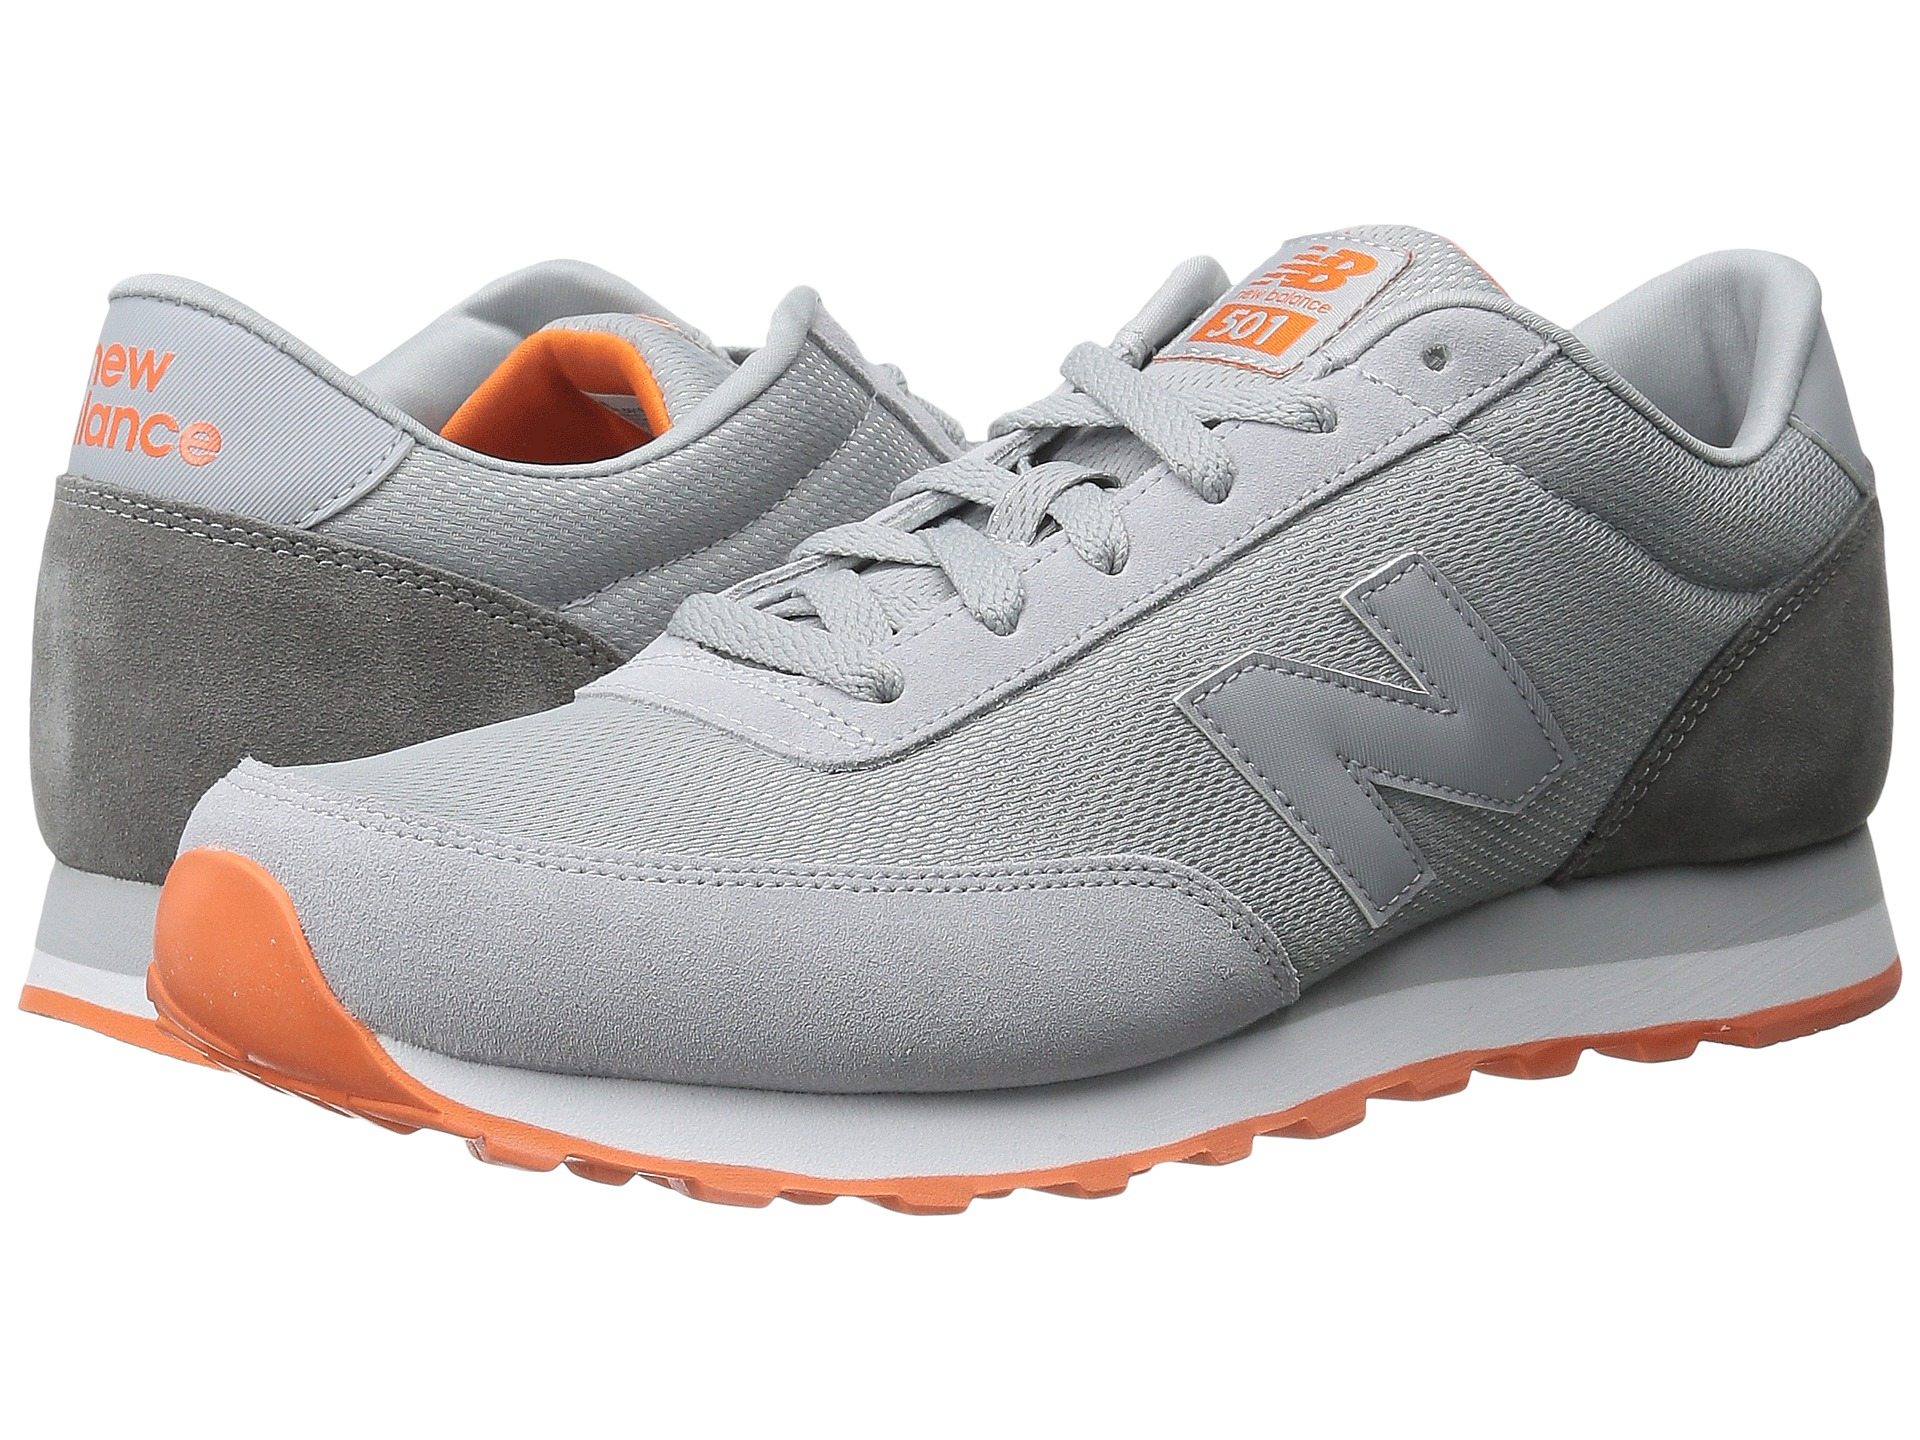 New Balance Classics Wl501 Womens Grey Orange Sneakers